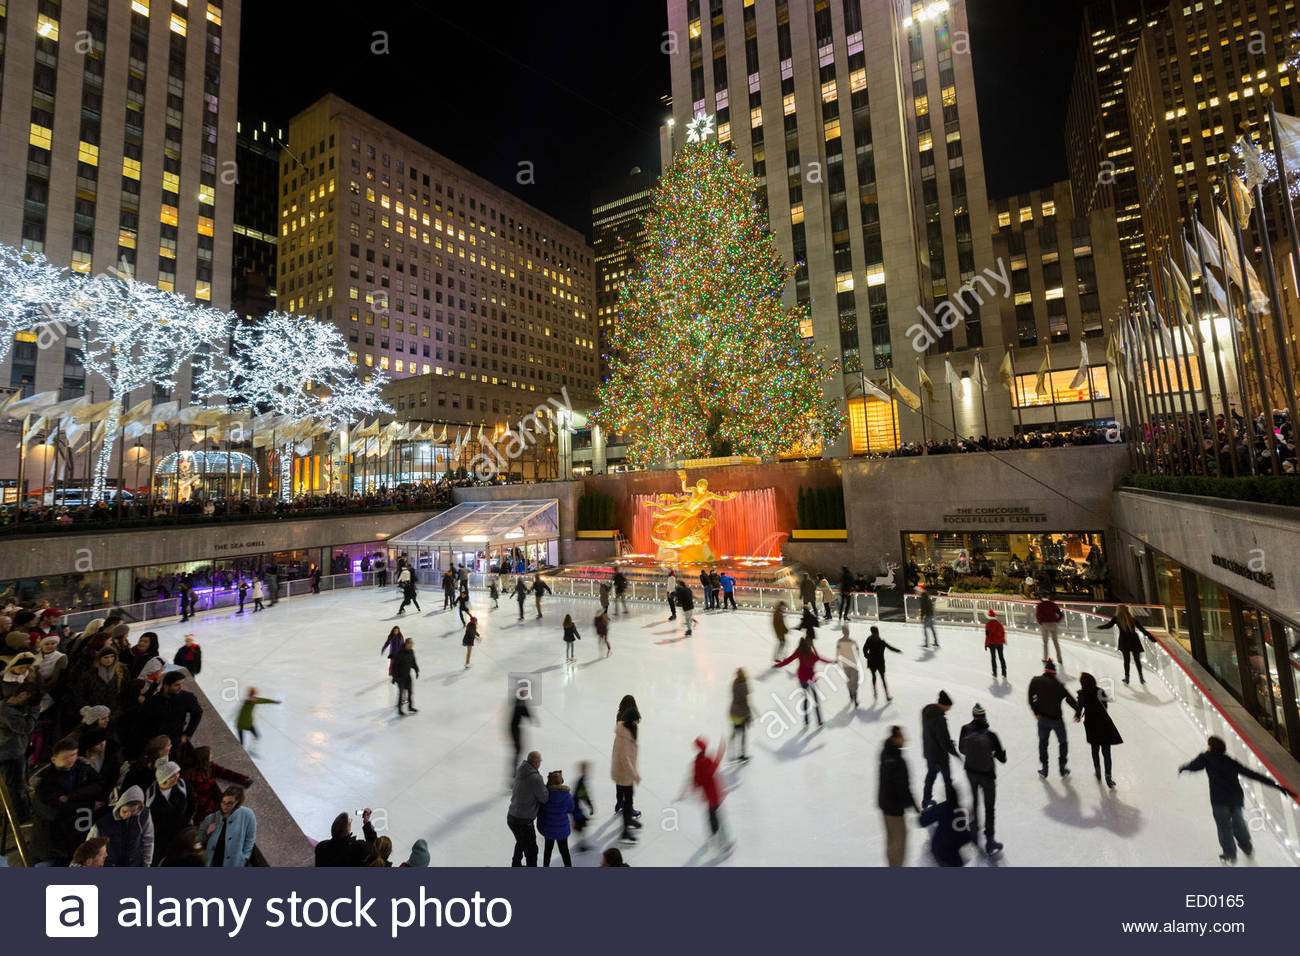 Tibet House New York City, Ice skating during the Christmas holiday lights at the Rink at ...